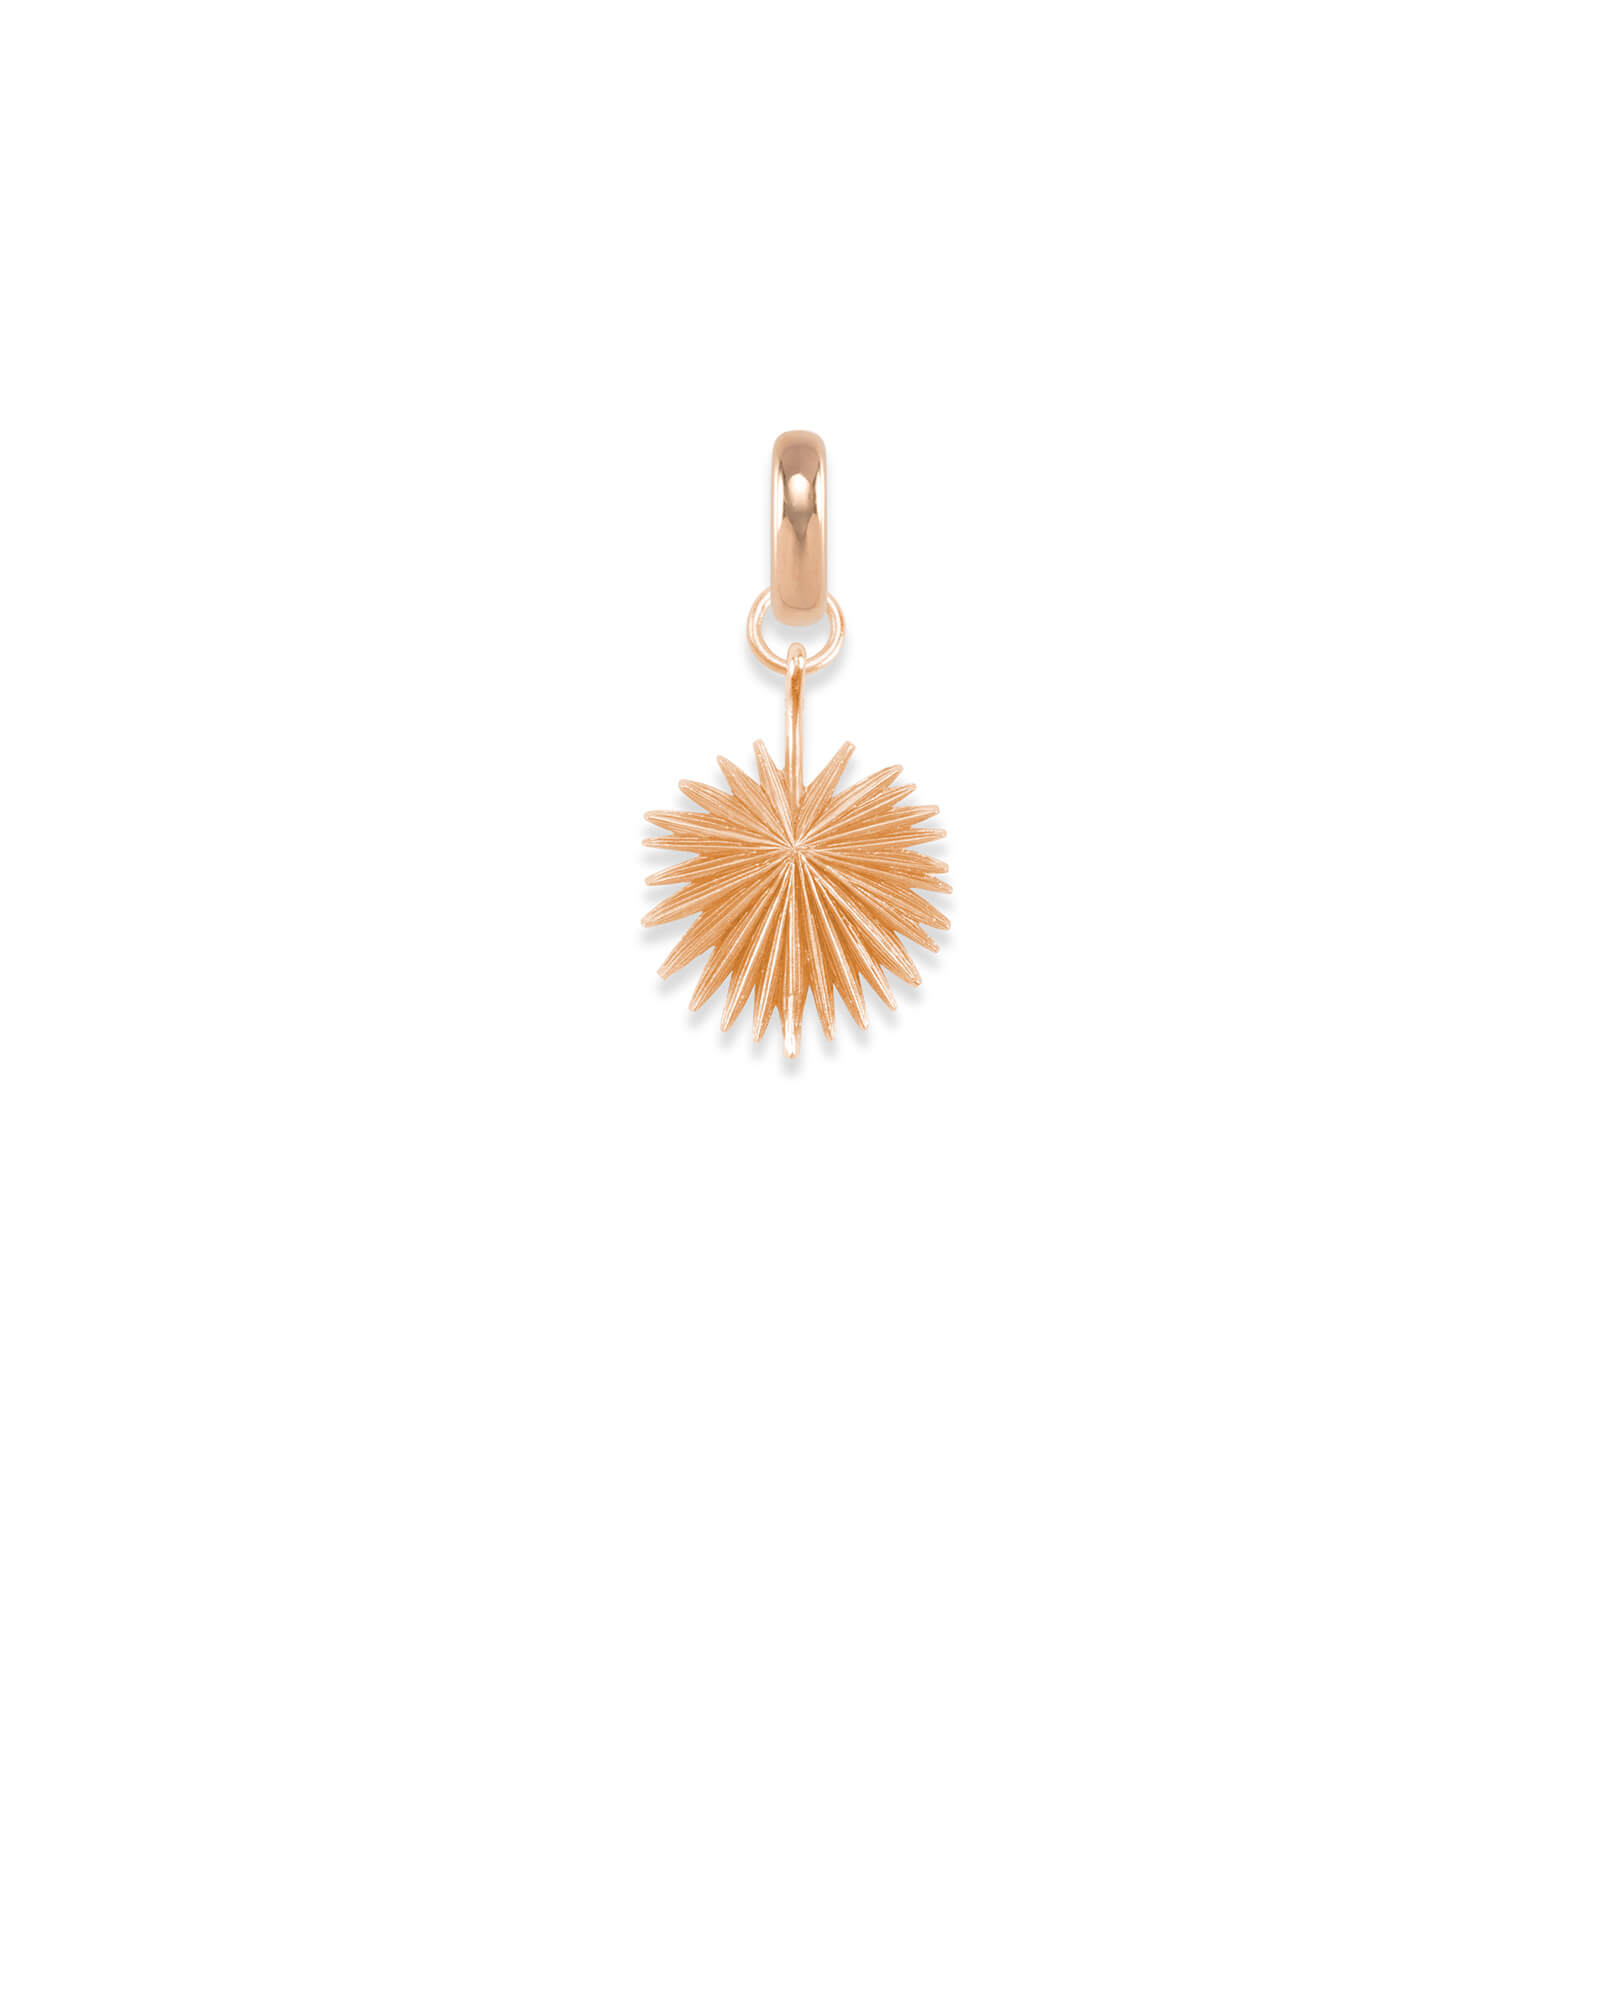 South Carolina Sabal Palmetto Charm in Rose Gold